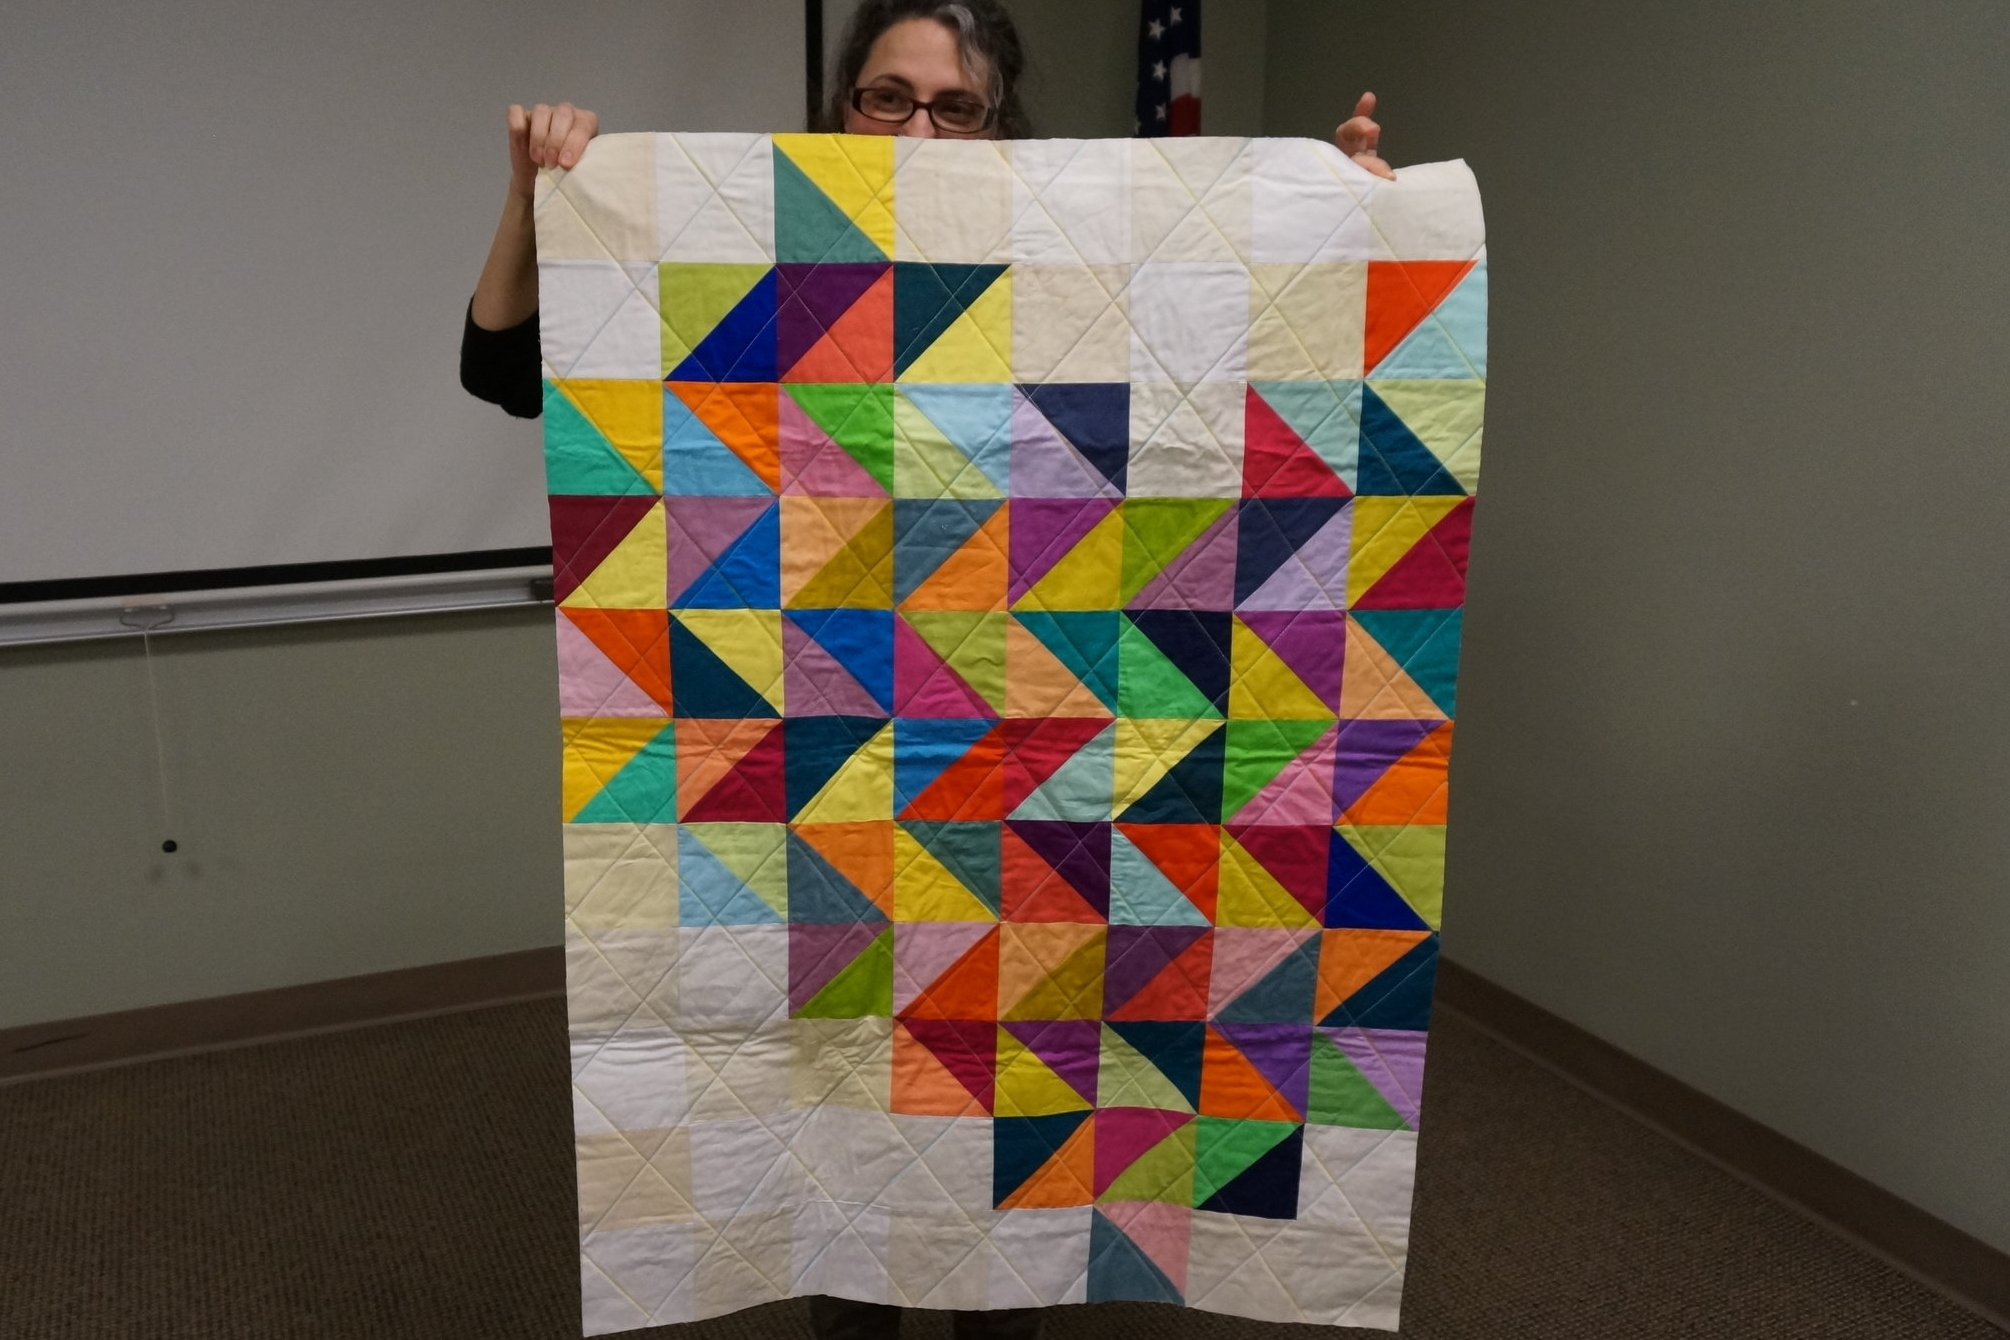 - Karen's latest creation is a pixelated half heart—can you see it?